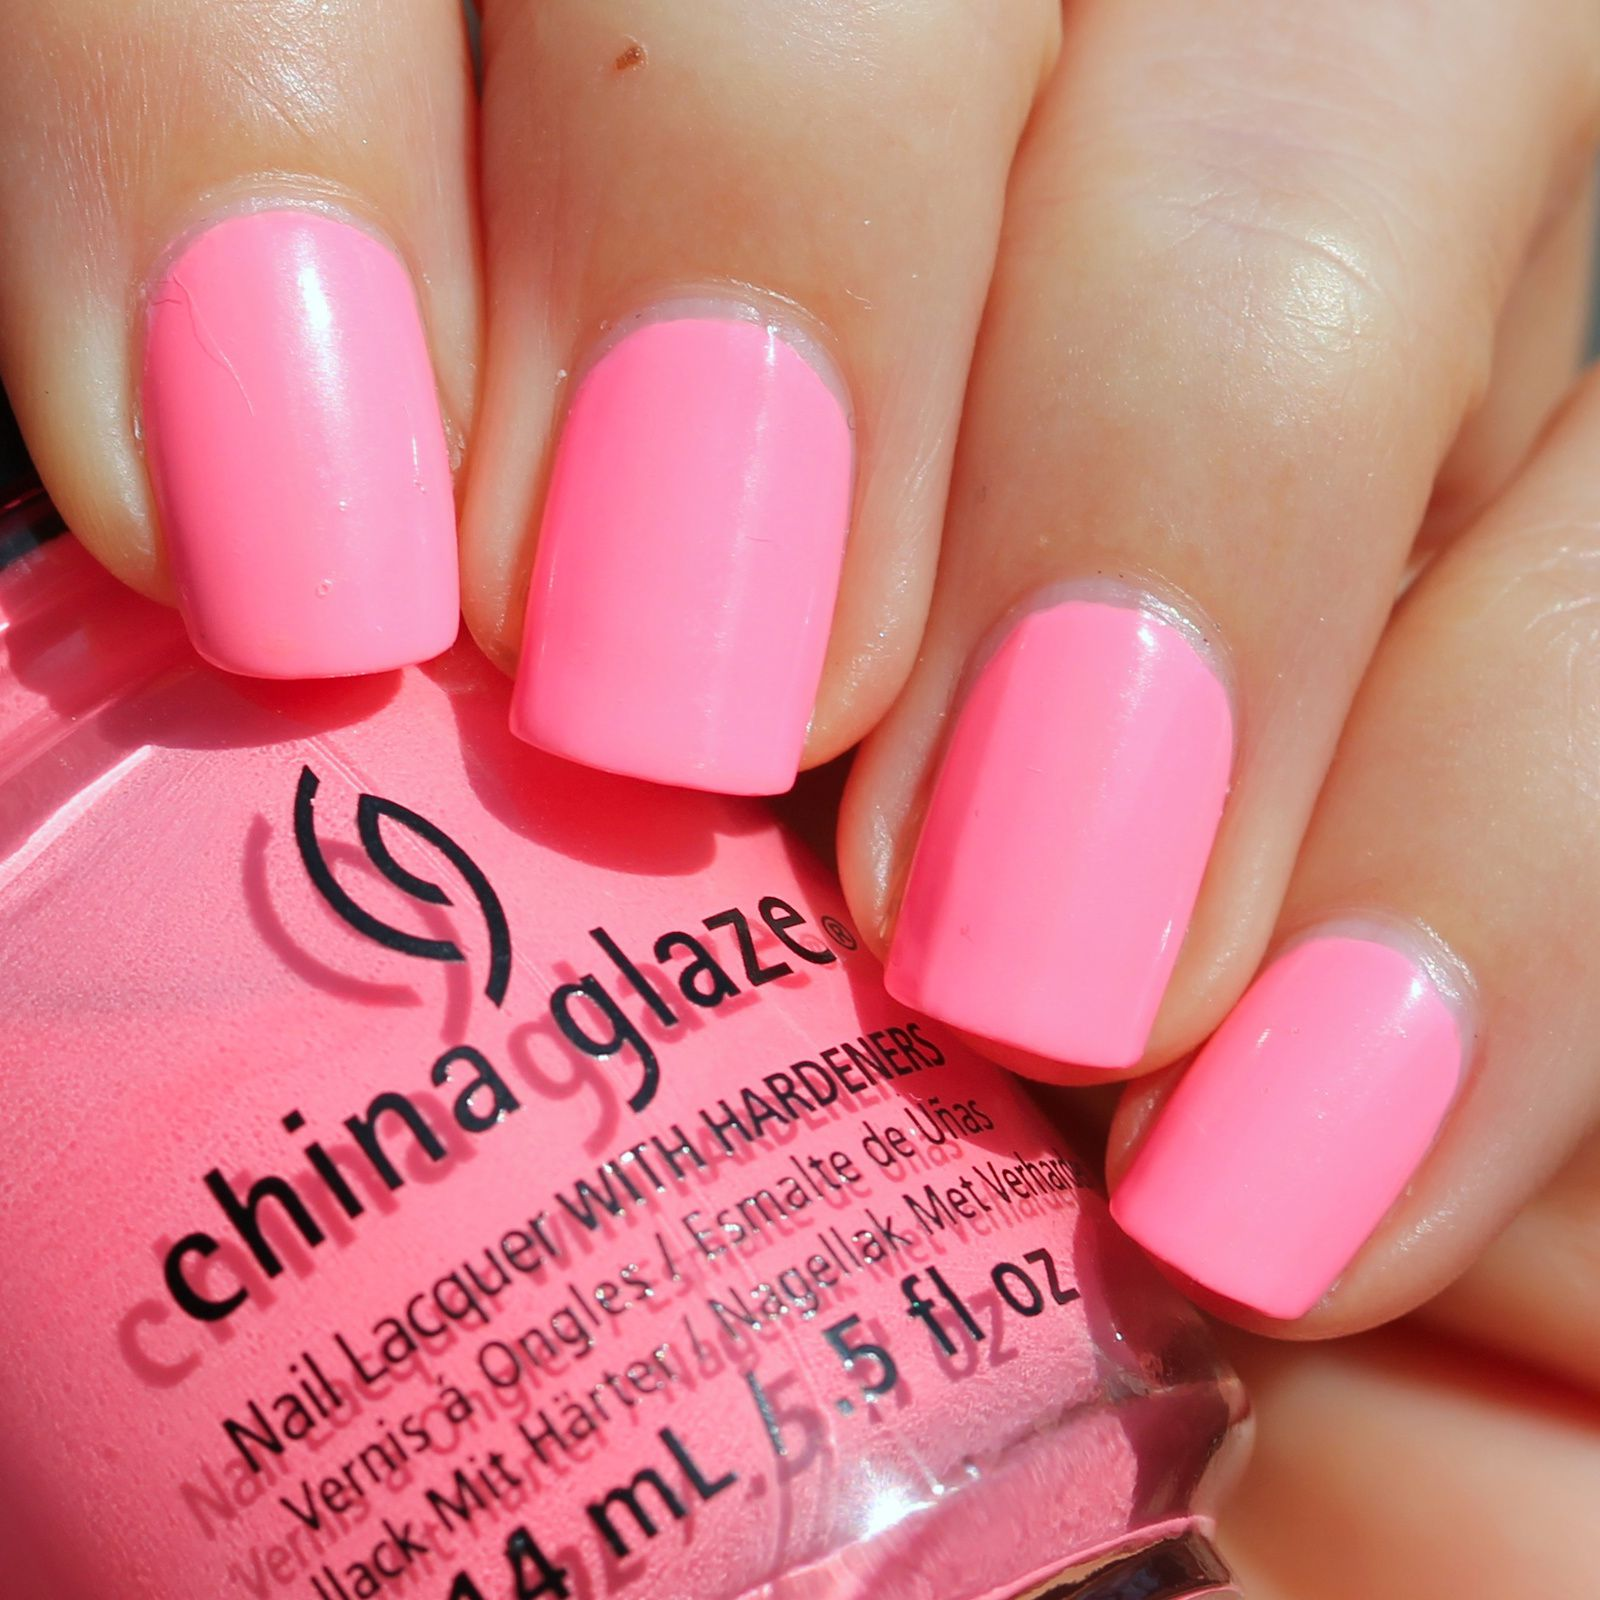 Duri Rejuvacote / China Glaze Neon & On & On / Poshe Top Coat